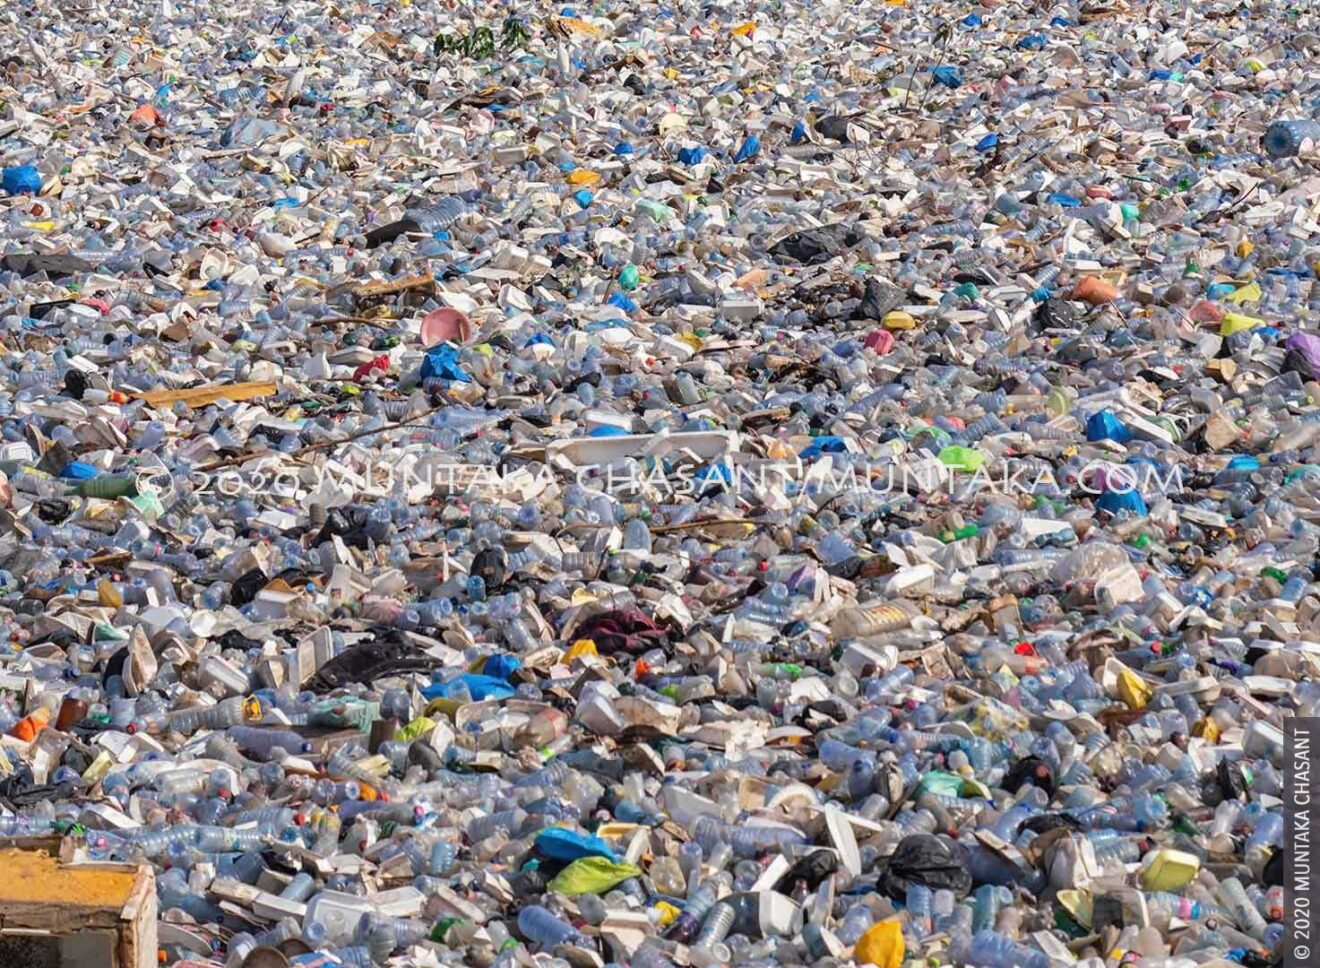 The plastic-waste choked Korle Lagoon near the center of Accra, Ghana's capital city. Ghana is facing a plastic waste crisis. © 2020 Muntaka Chasant